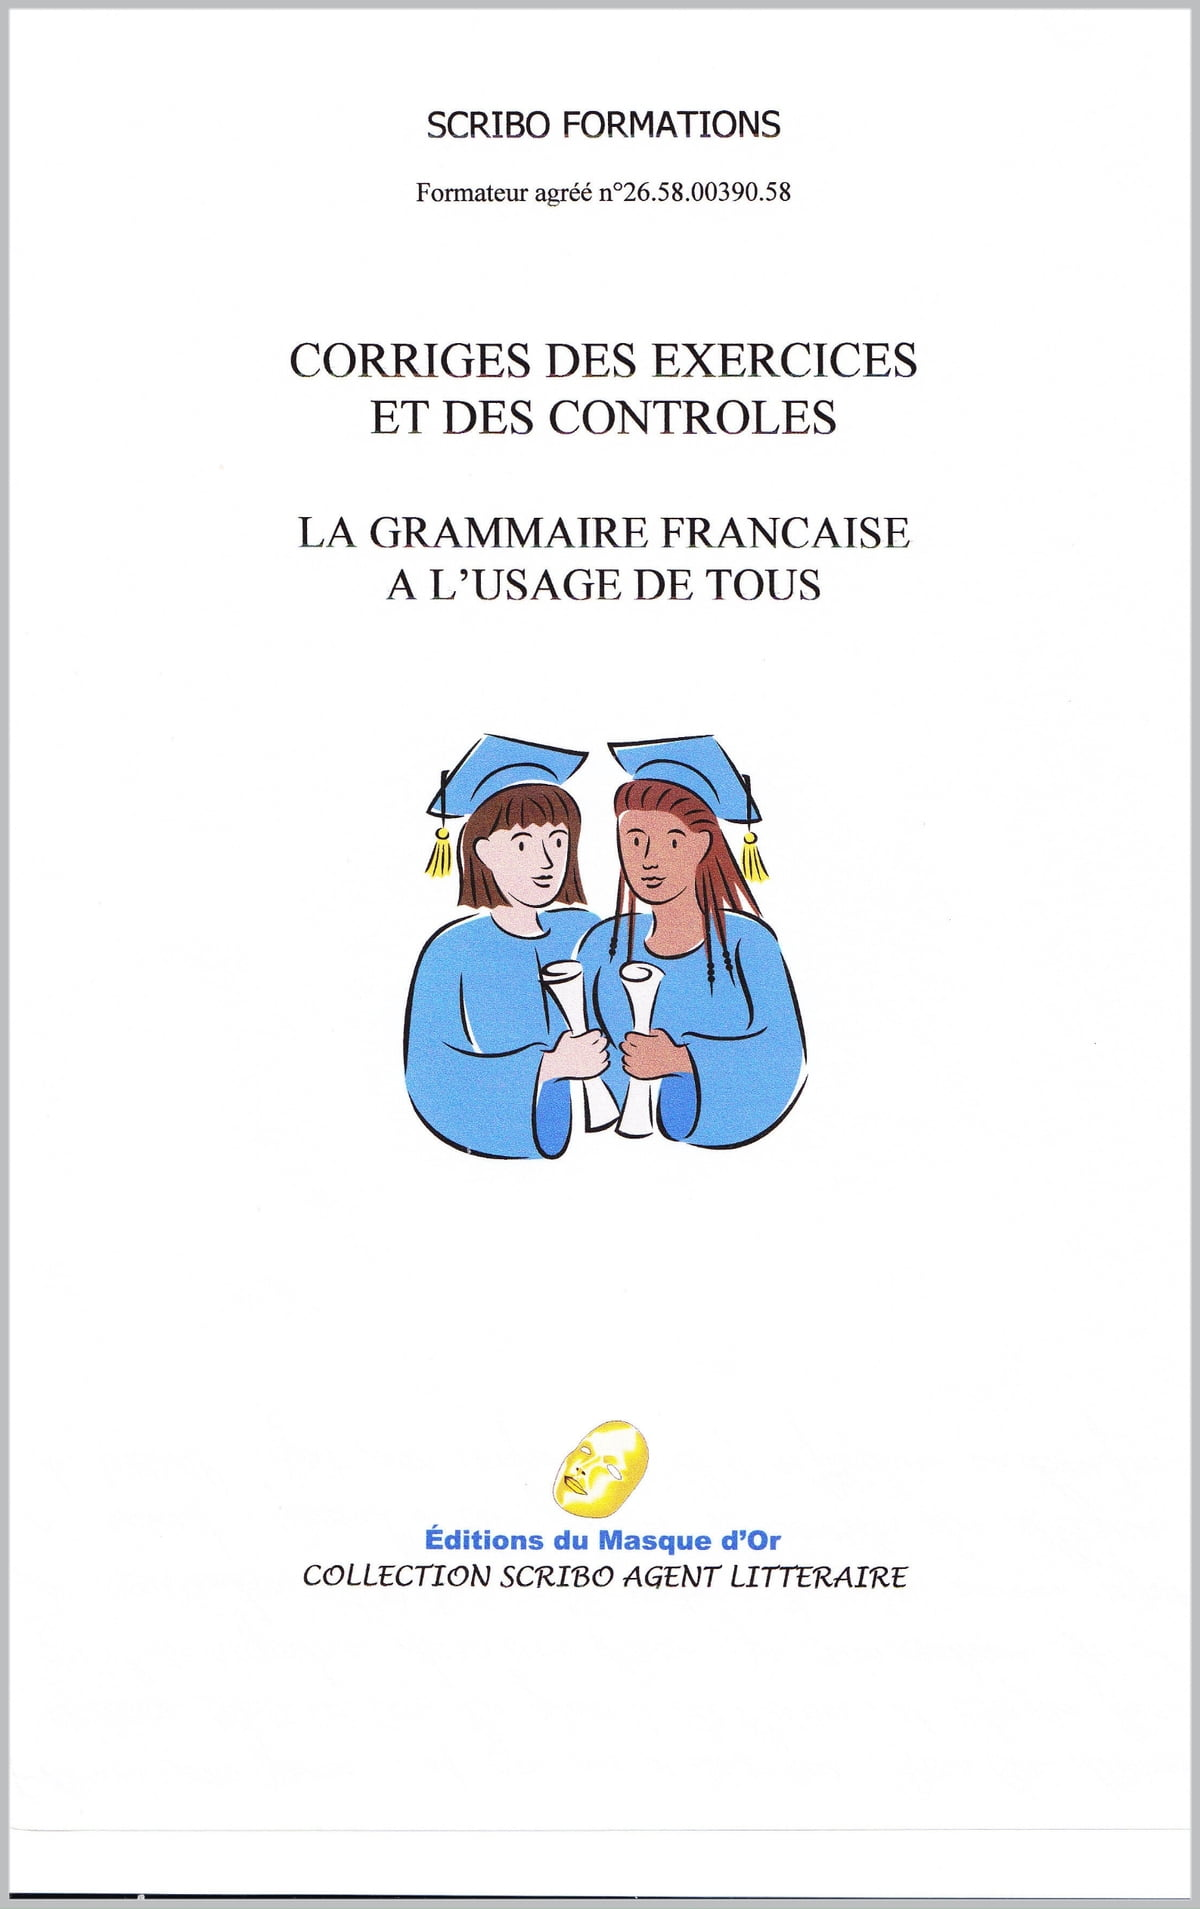 Corriges Des Exercices Et Controles Ebook By Scribo Formations 1230003579848 Rakuten Kobo United States